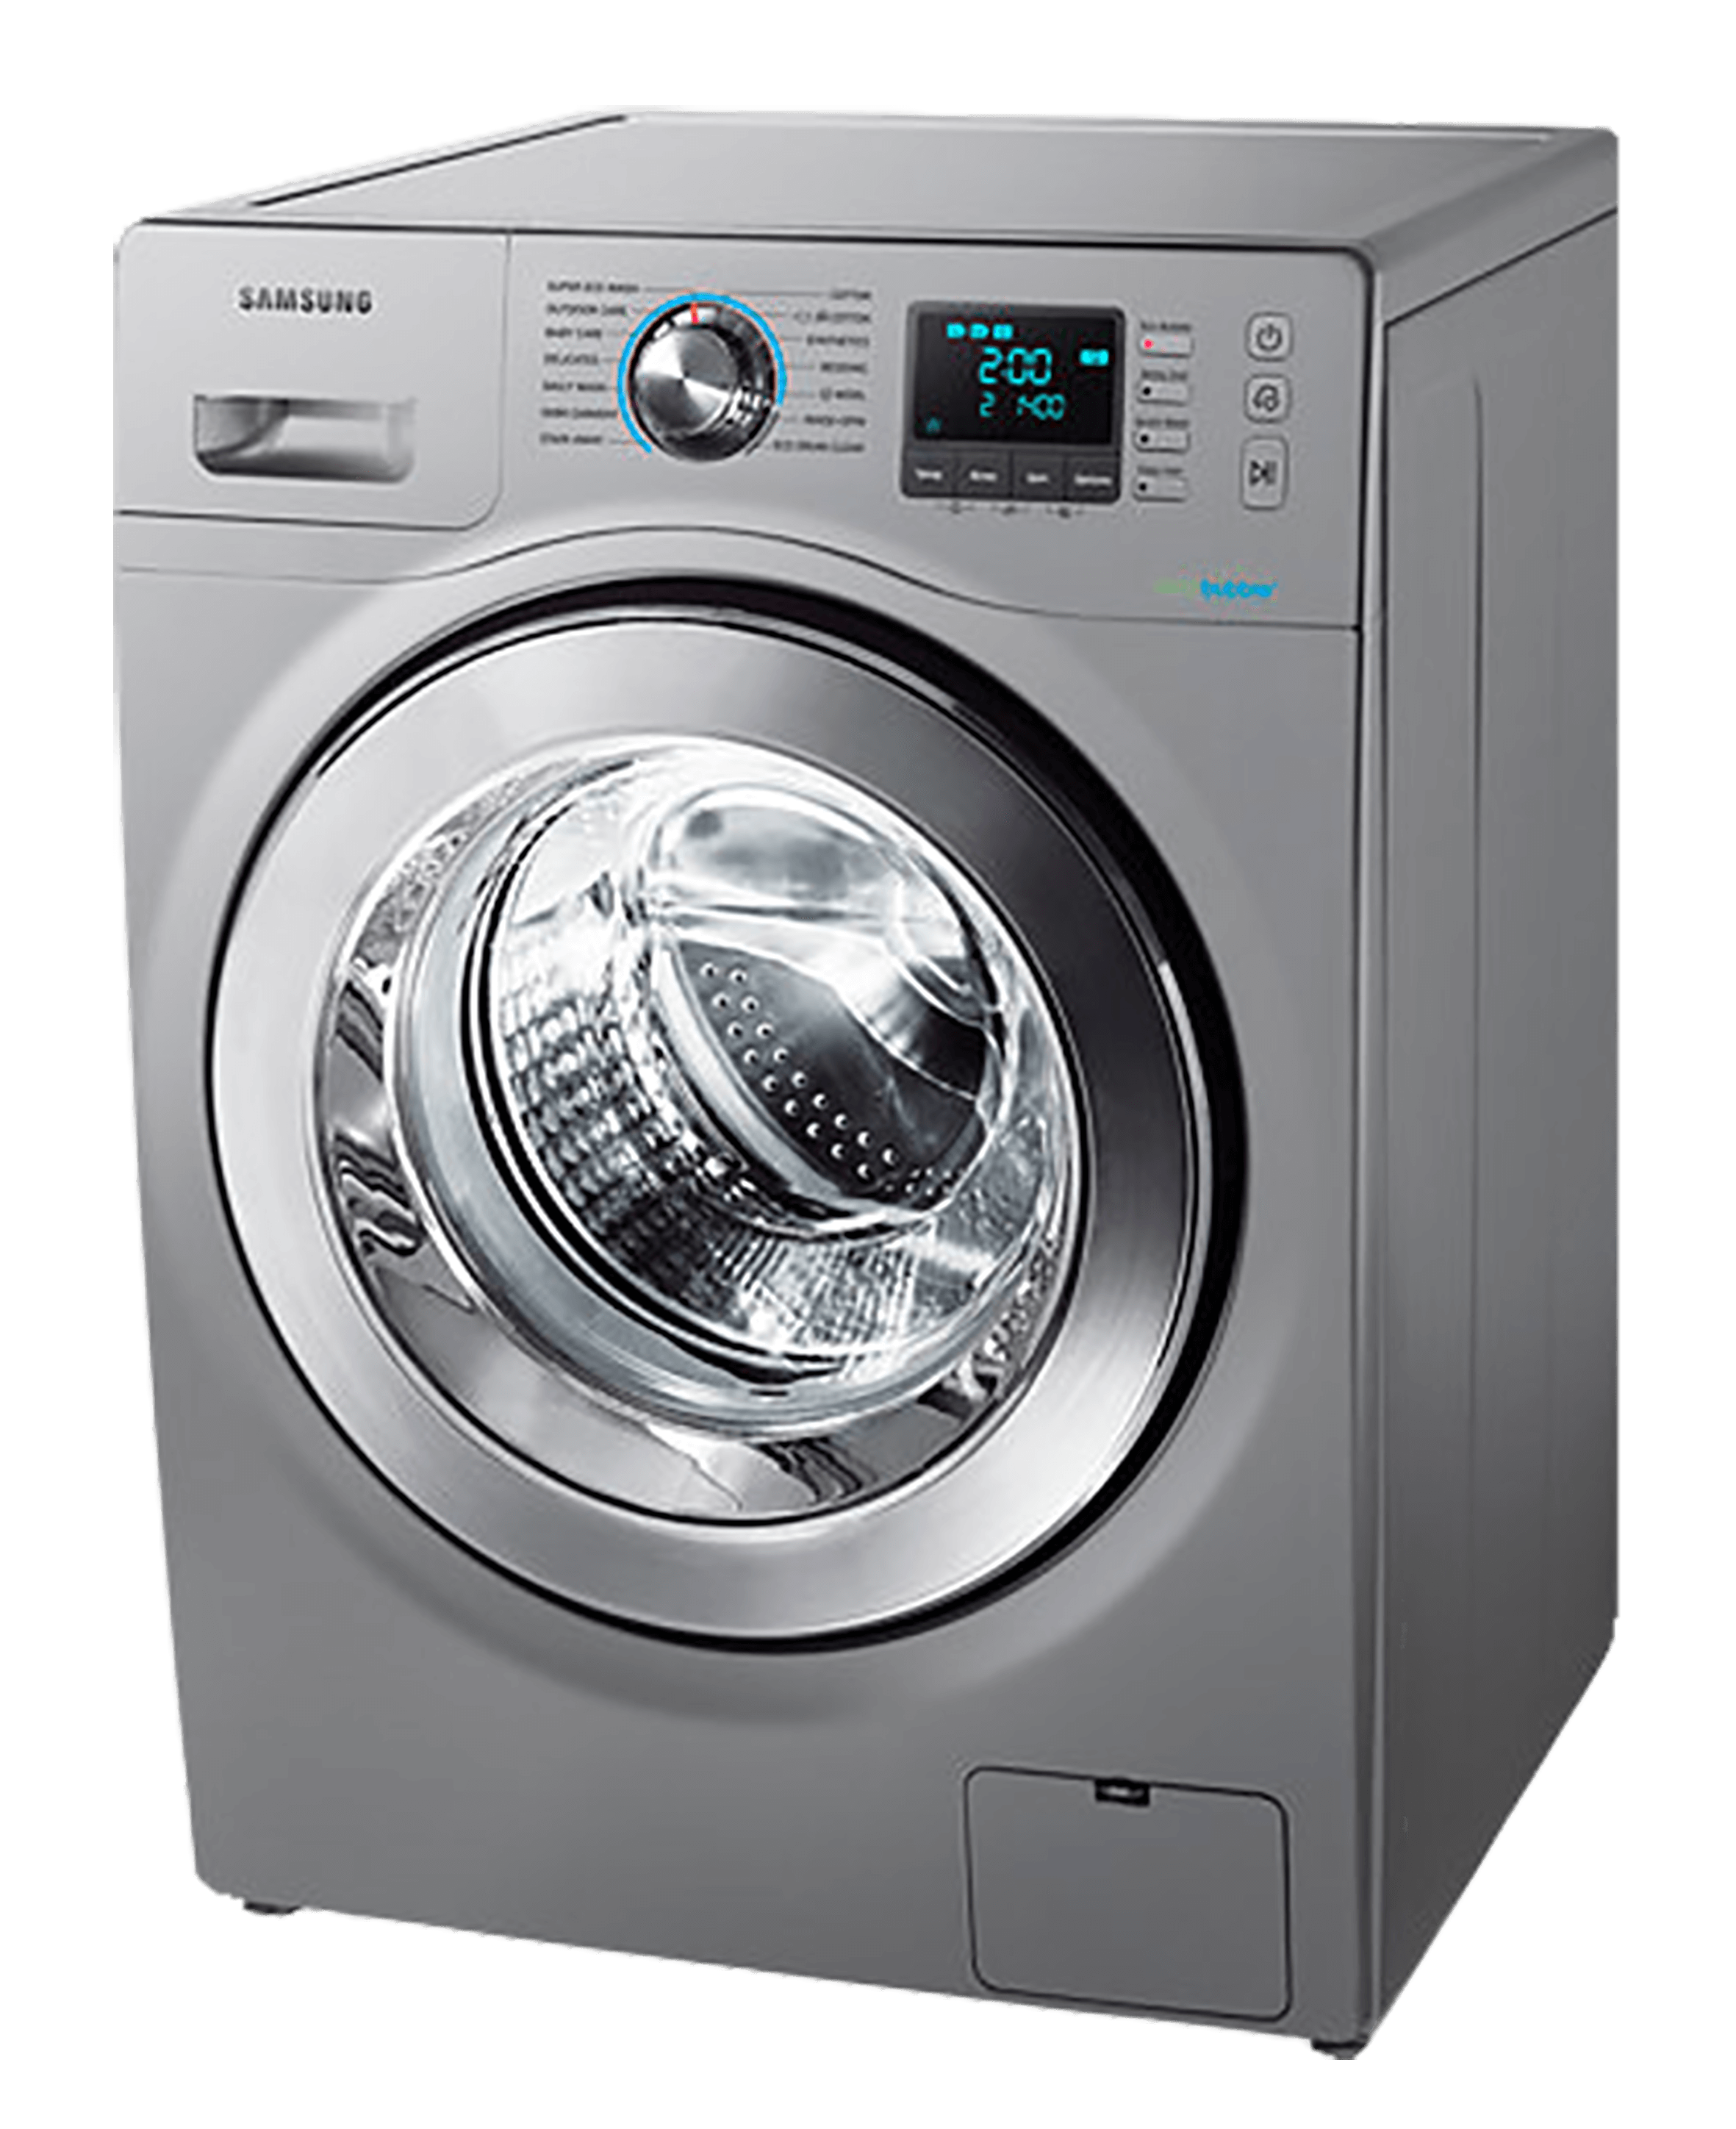 Samsung Washing Machine ~ Samsung washing machine serial number decoder